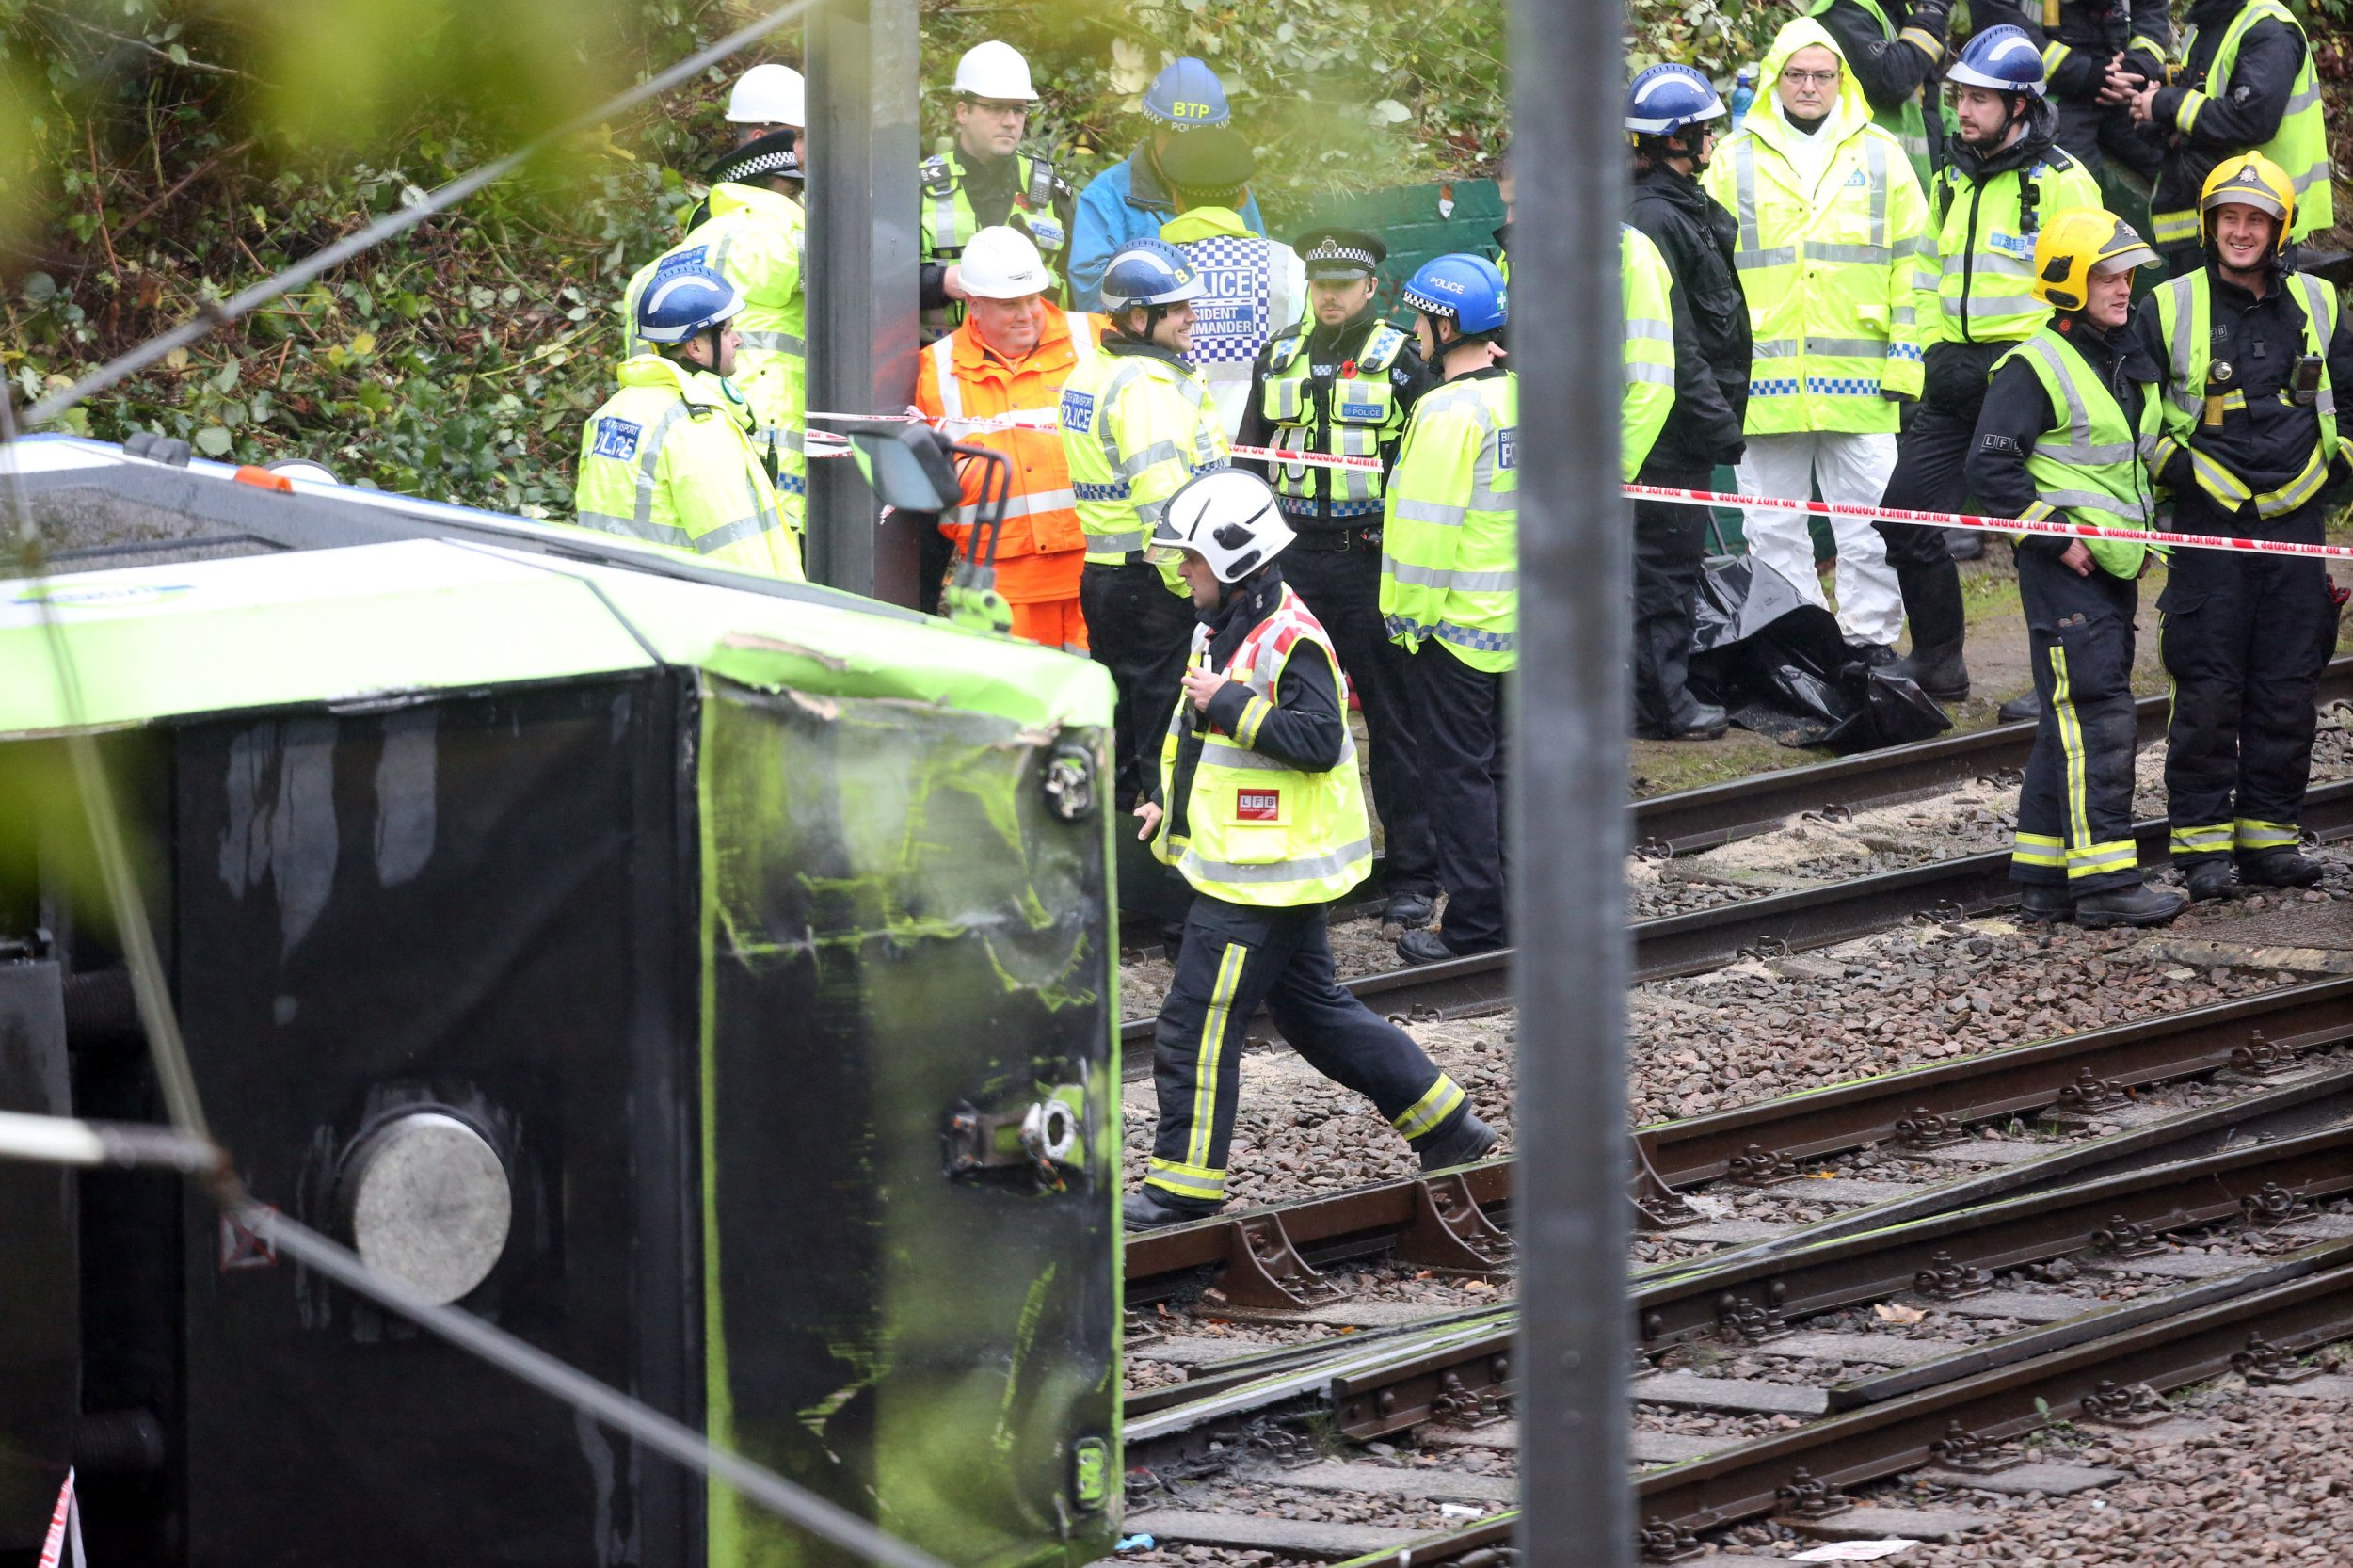 The scene after a tram overturned in Croydon, south London, trapping five people and injuring another 40. PRESS ASSOCIATION Photo. Issue date: Wednesday November 9, 2016. Police confirmed they were called to the scene at Sandilands tram stop in Croydon at around 6.10am. See PA story POLICE Croydon. Photo credit should read: Steve Parsons/PA Wire